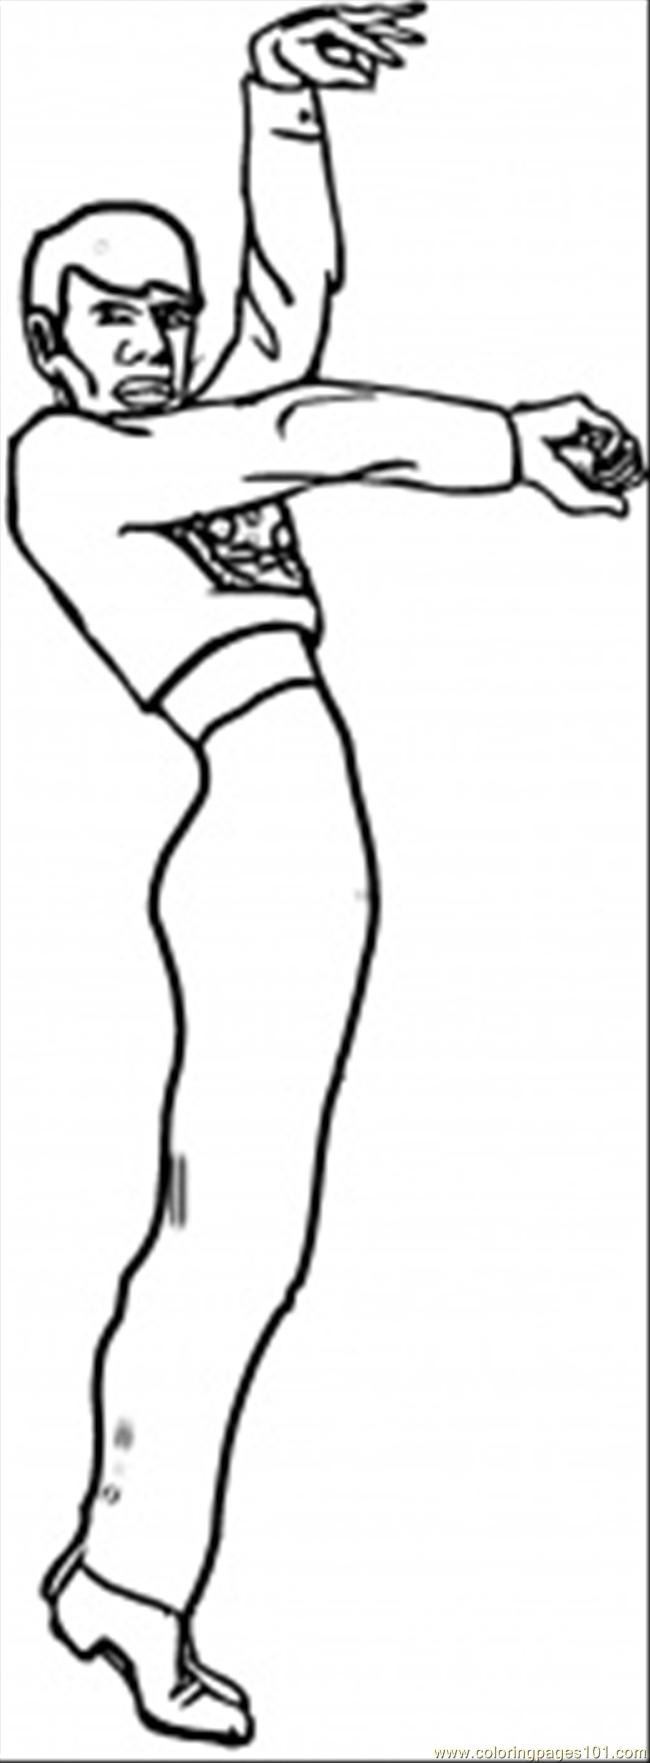 Coloring Pages Spanish Man Dancer (Countries > Spain